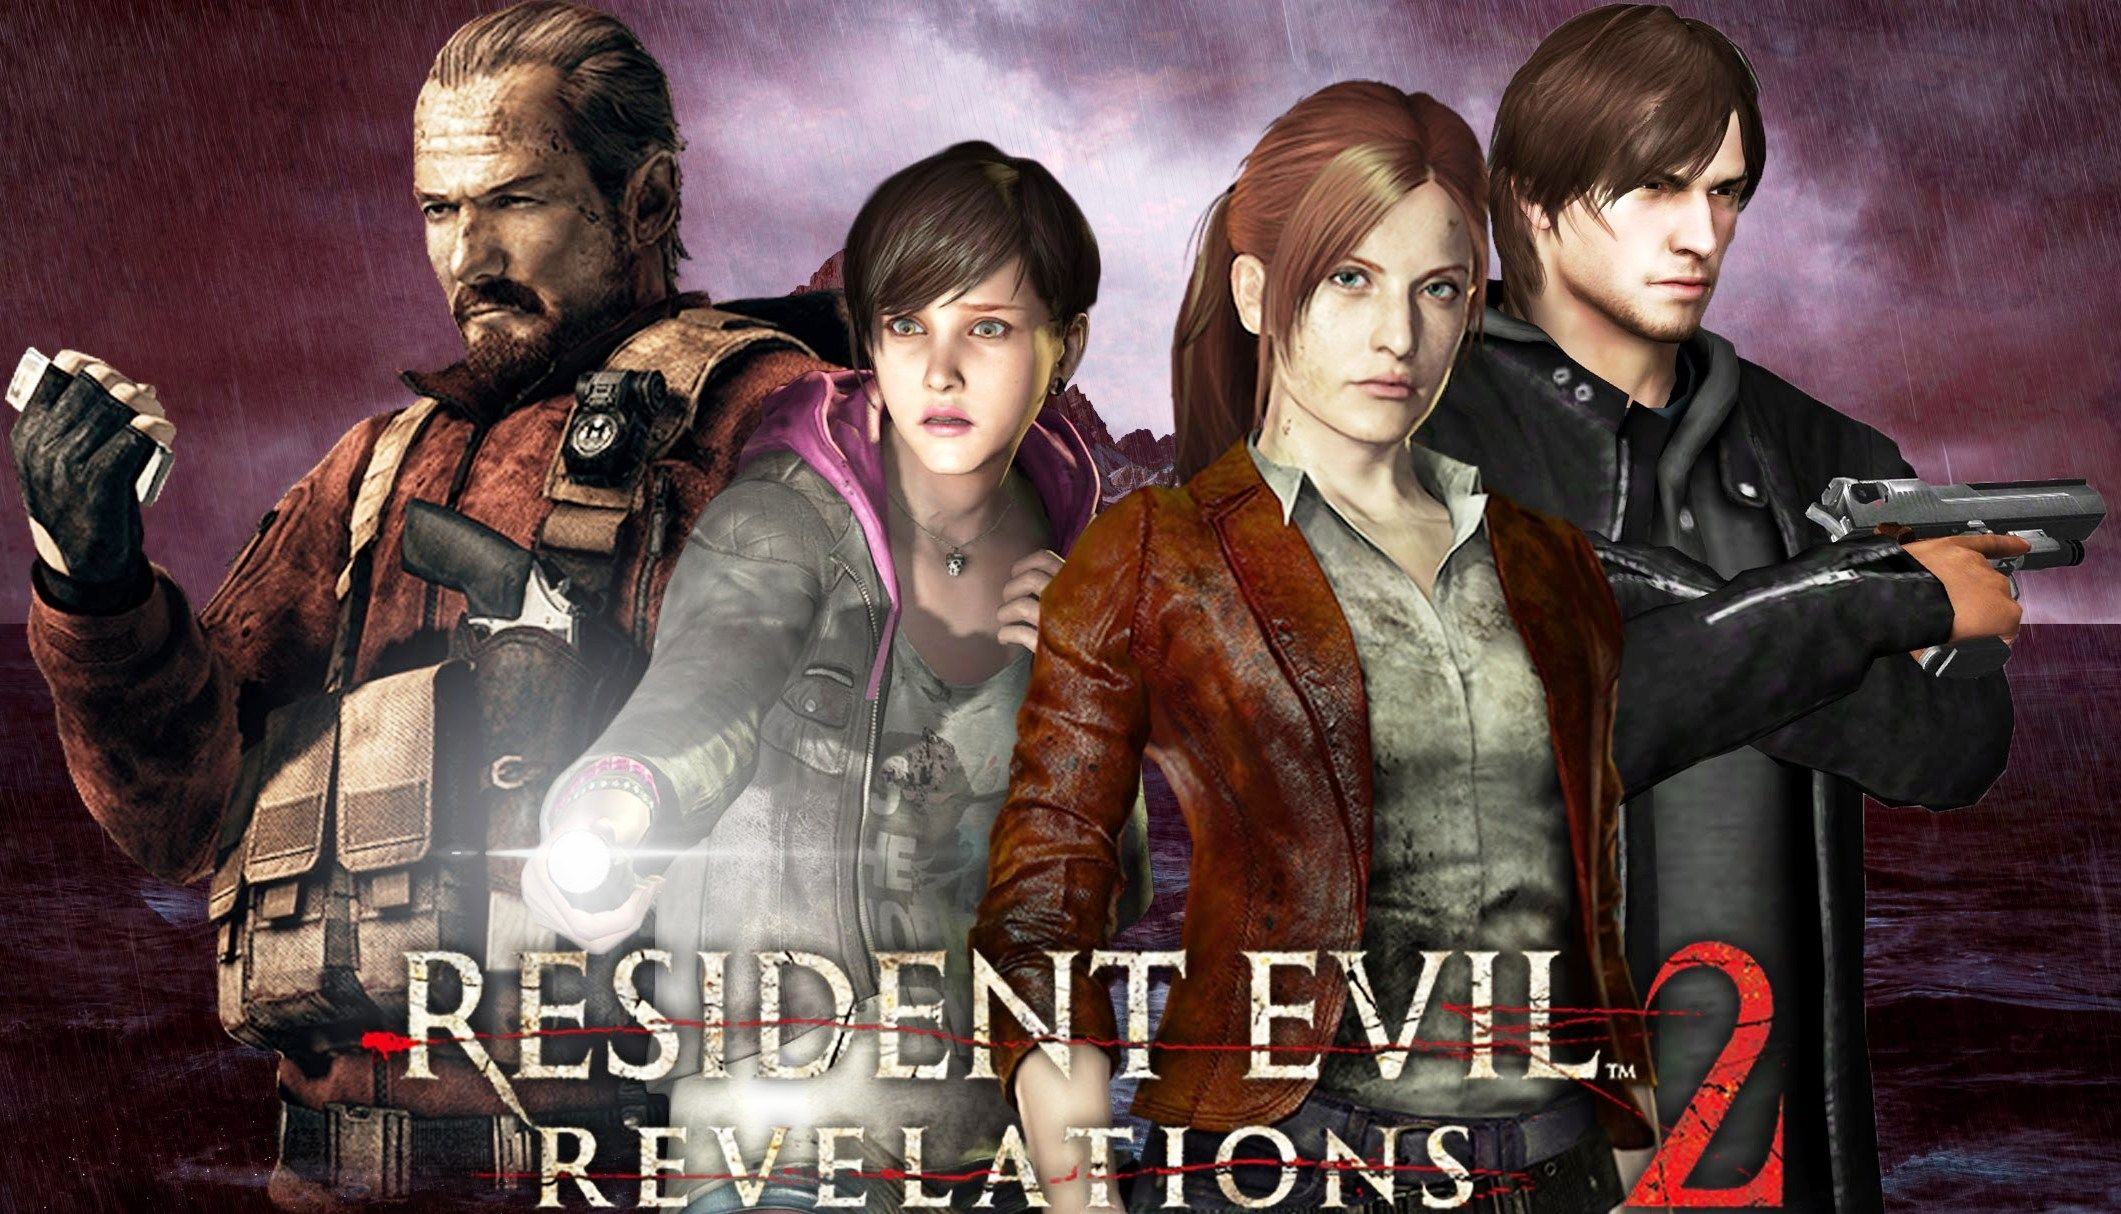 Resident Evil Revelations 2 First Episode Free To Download On